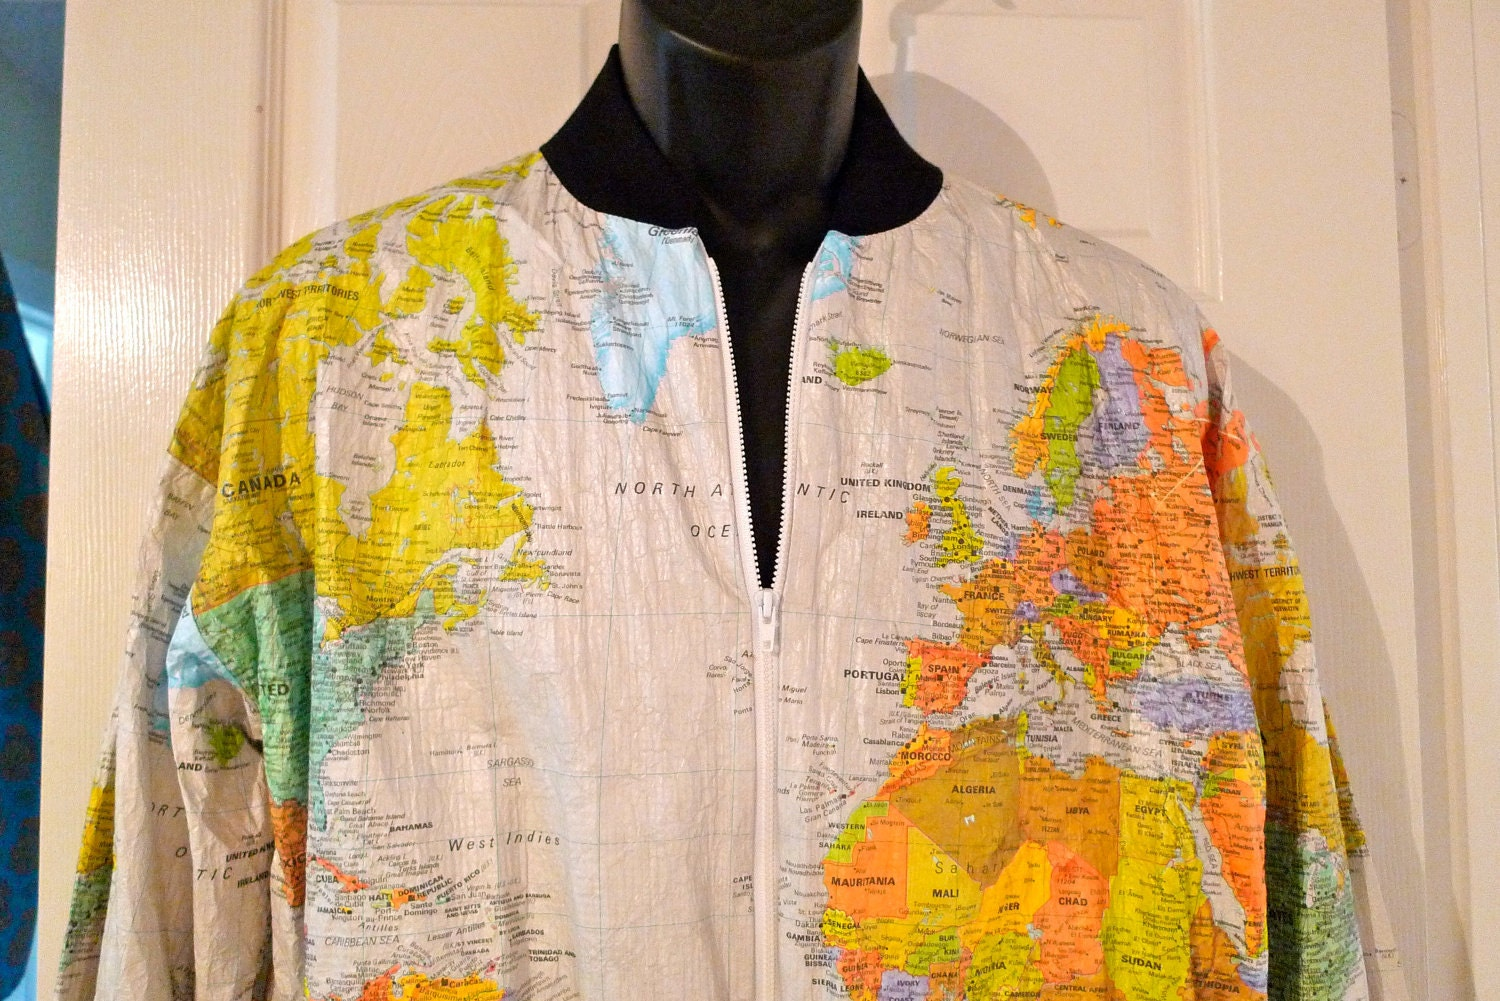 World map Paper jacket Wearin 39 The World Map cream white